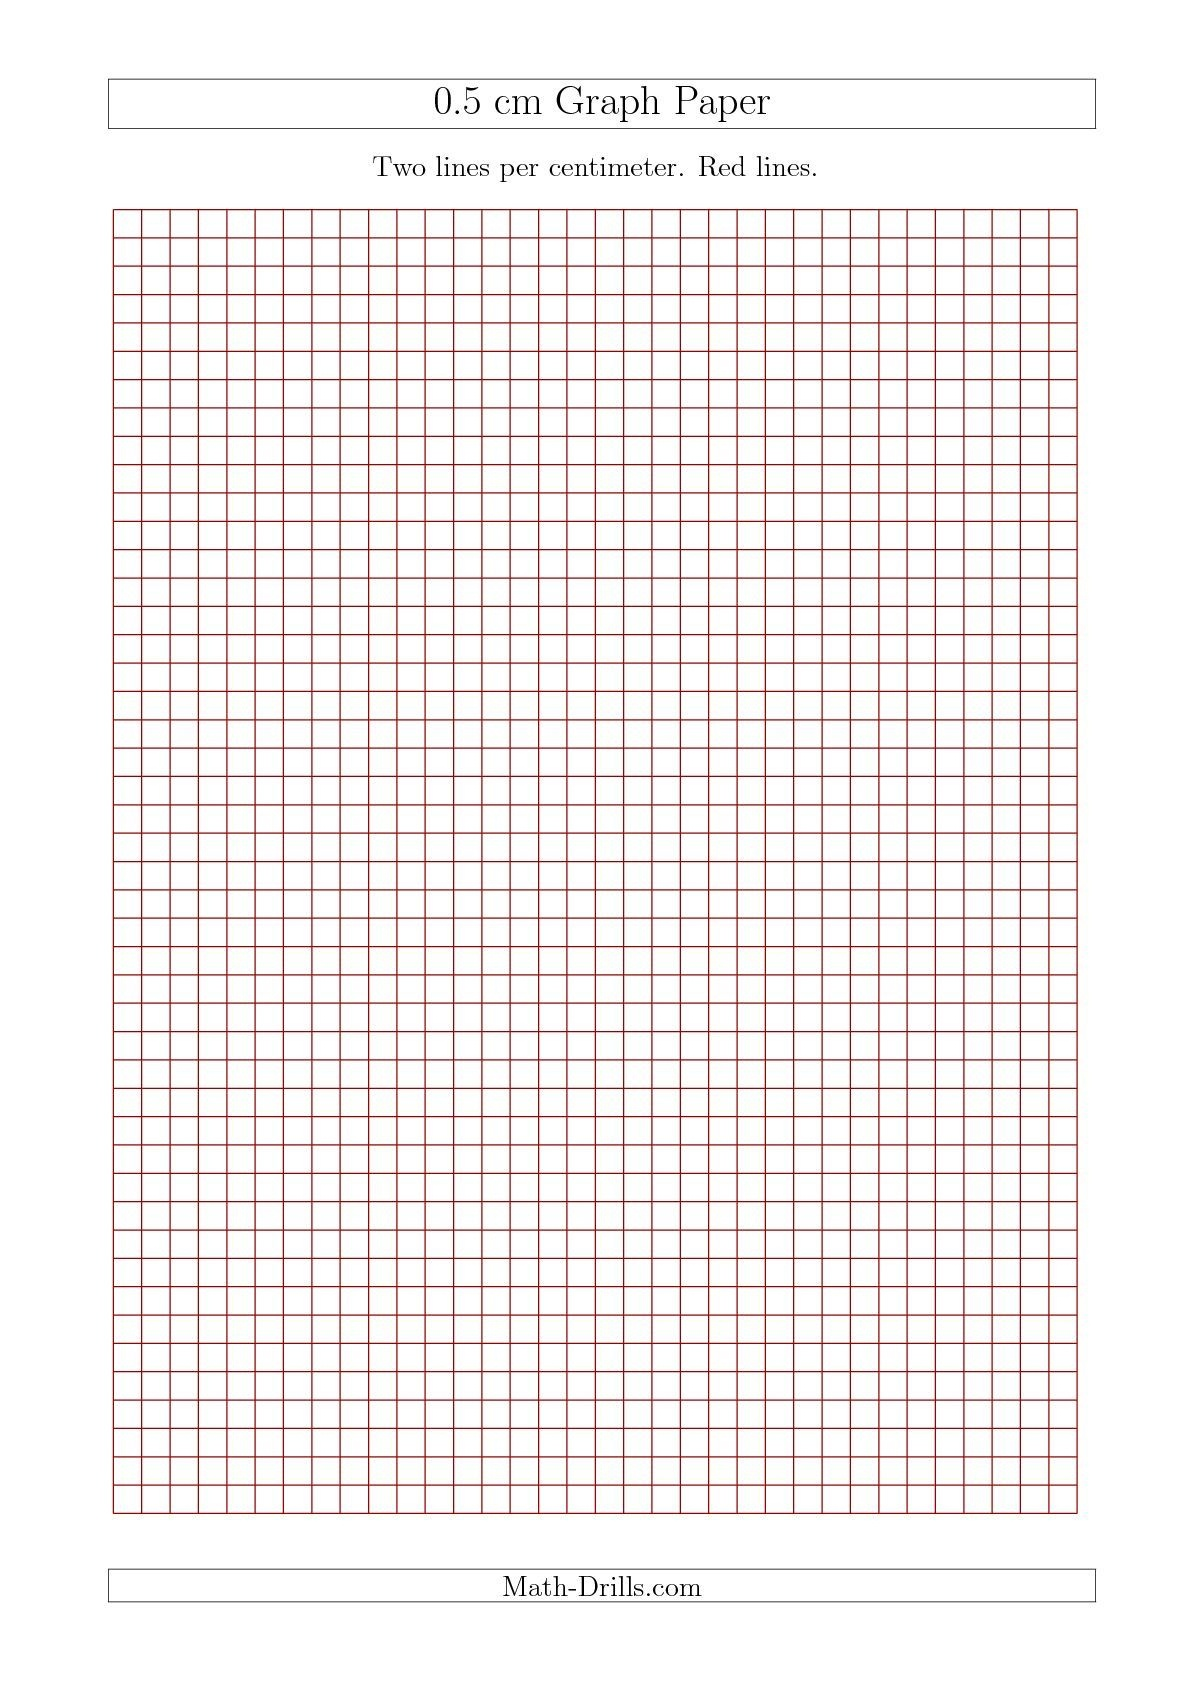 New 2015-09-17! 0.5 Cm Graph Paper With Red Lines (A4 Size) Math - Free Printable Graph Paper 1 4 Inch